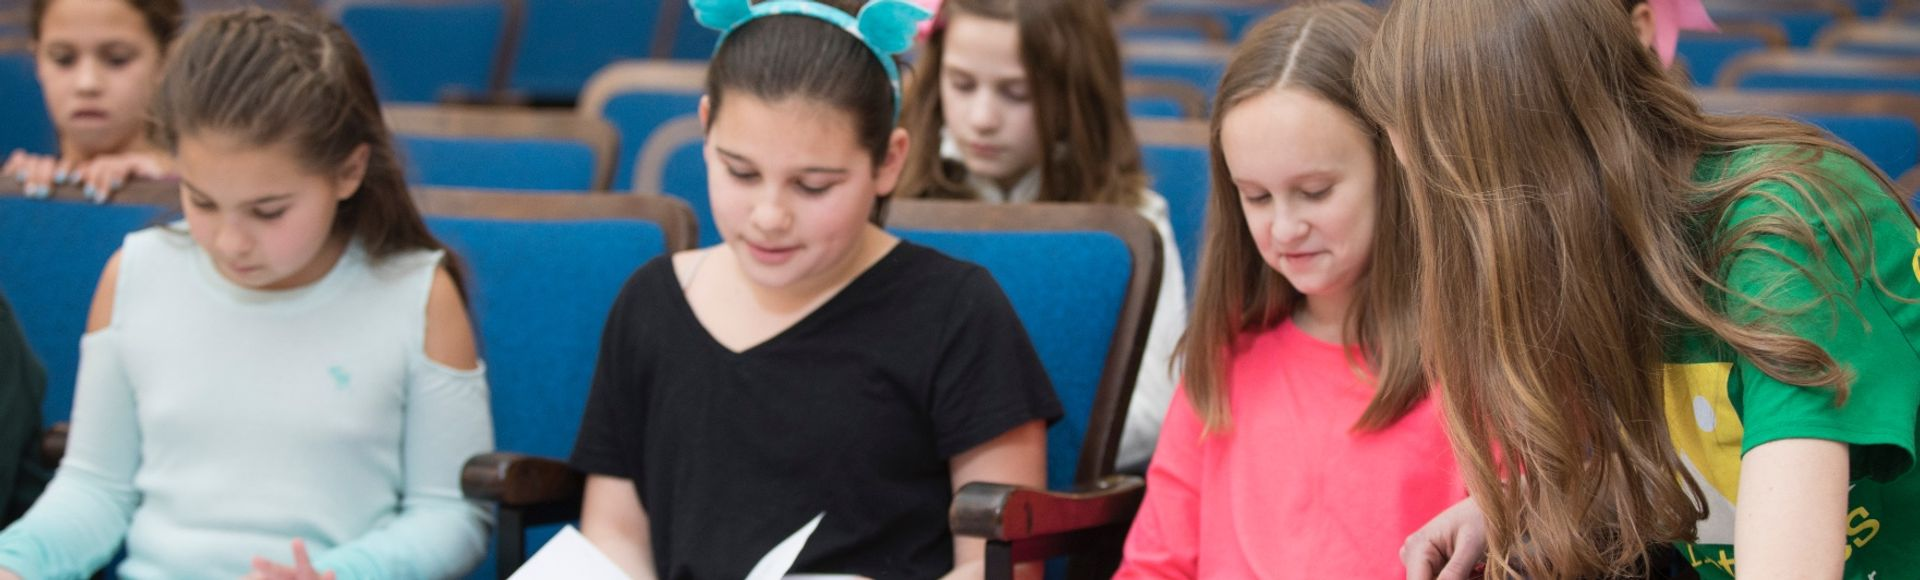 children sitting in audience seats reading theater scripts